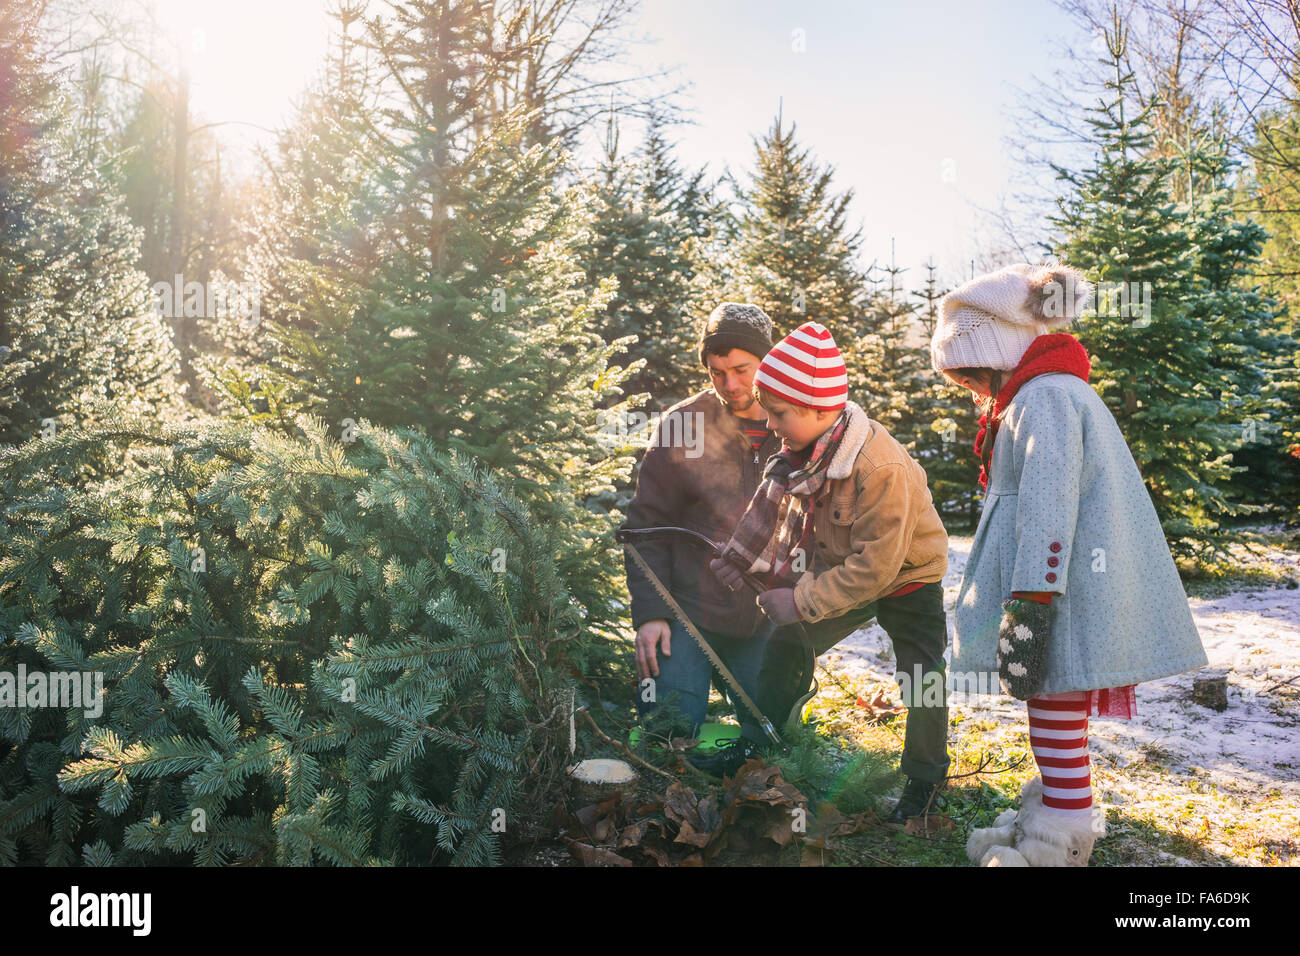 Cut Down Christmas Tree Near Me.Young Boy Cutting Down Christmas Tree With Father And Sister